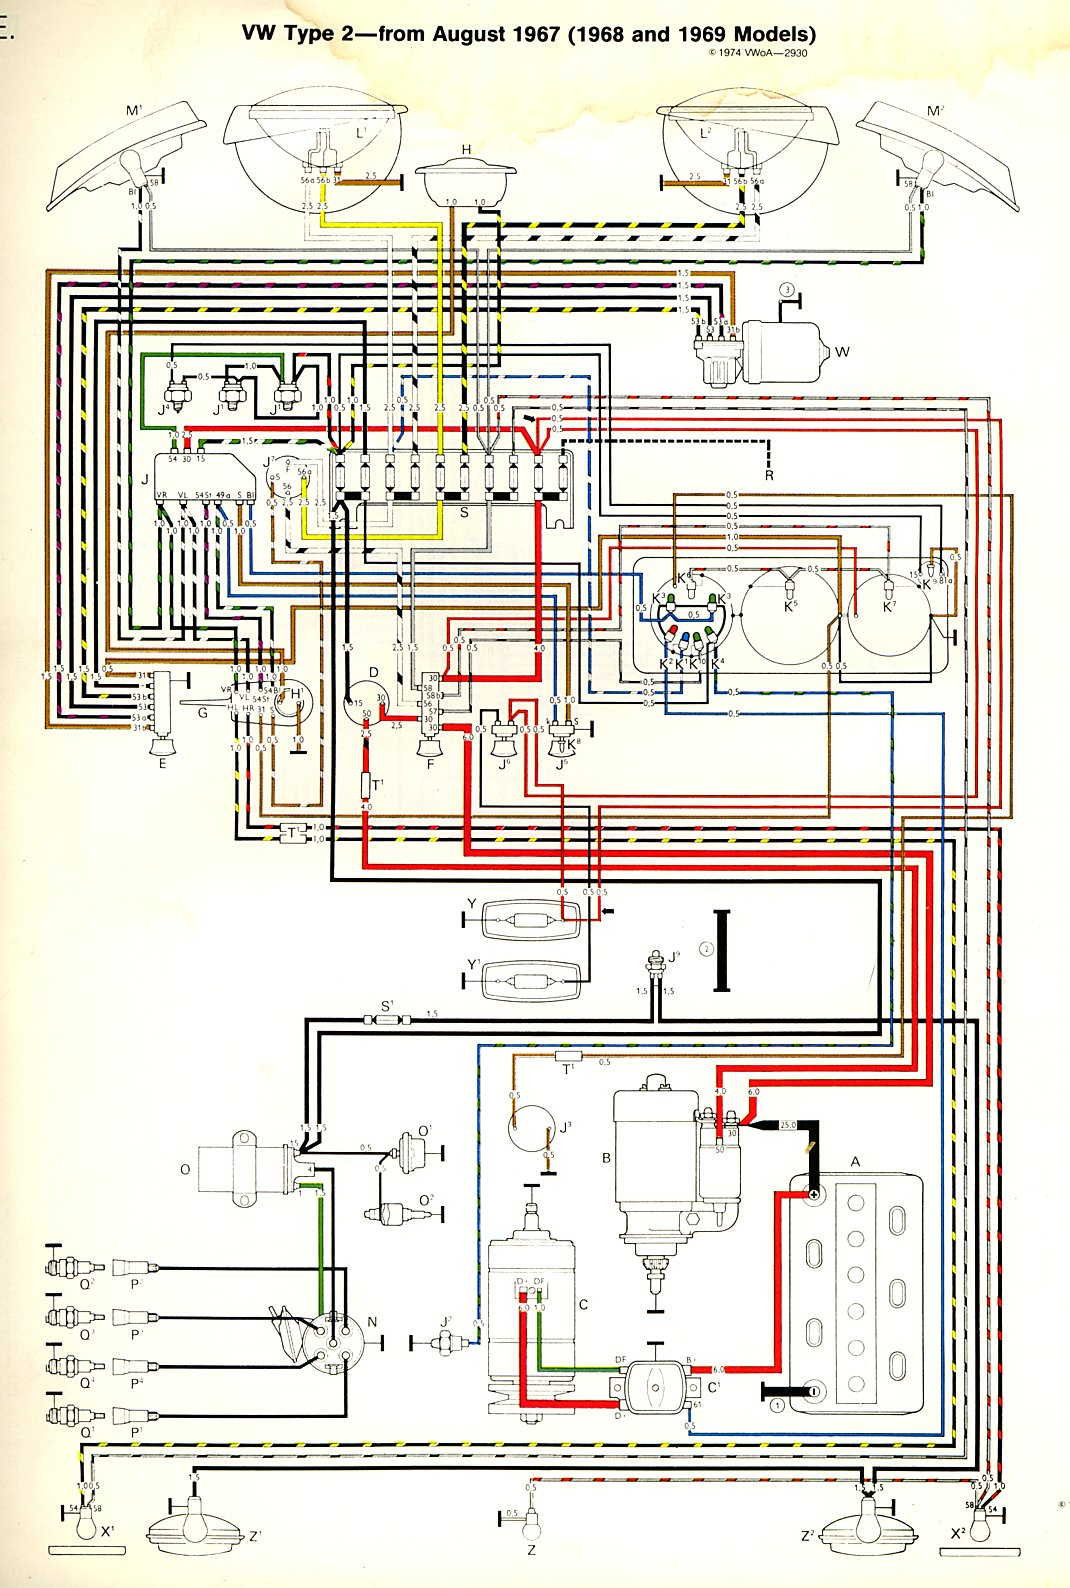 baybus_6869a 74 vw bug wiring diagram cardboard tube support diagram \u2022 free Wiring Harness Diagram at fashall.co